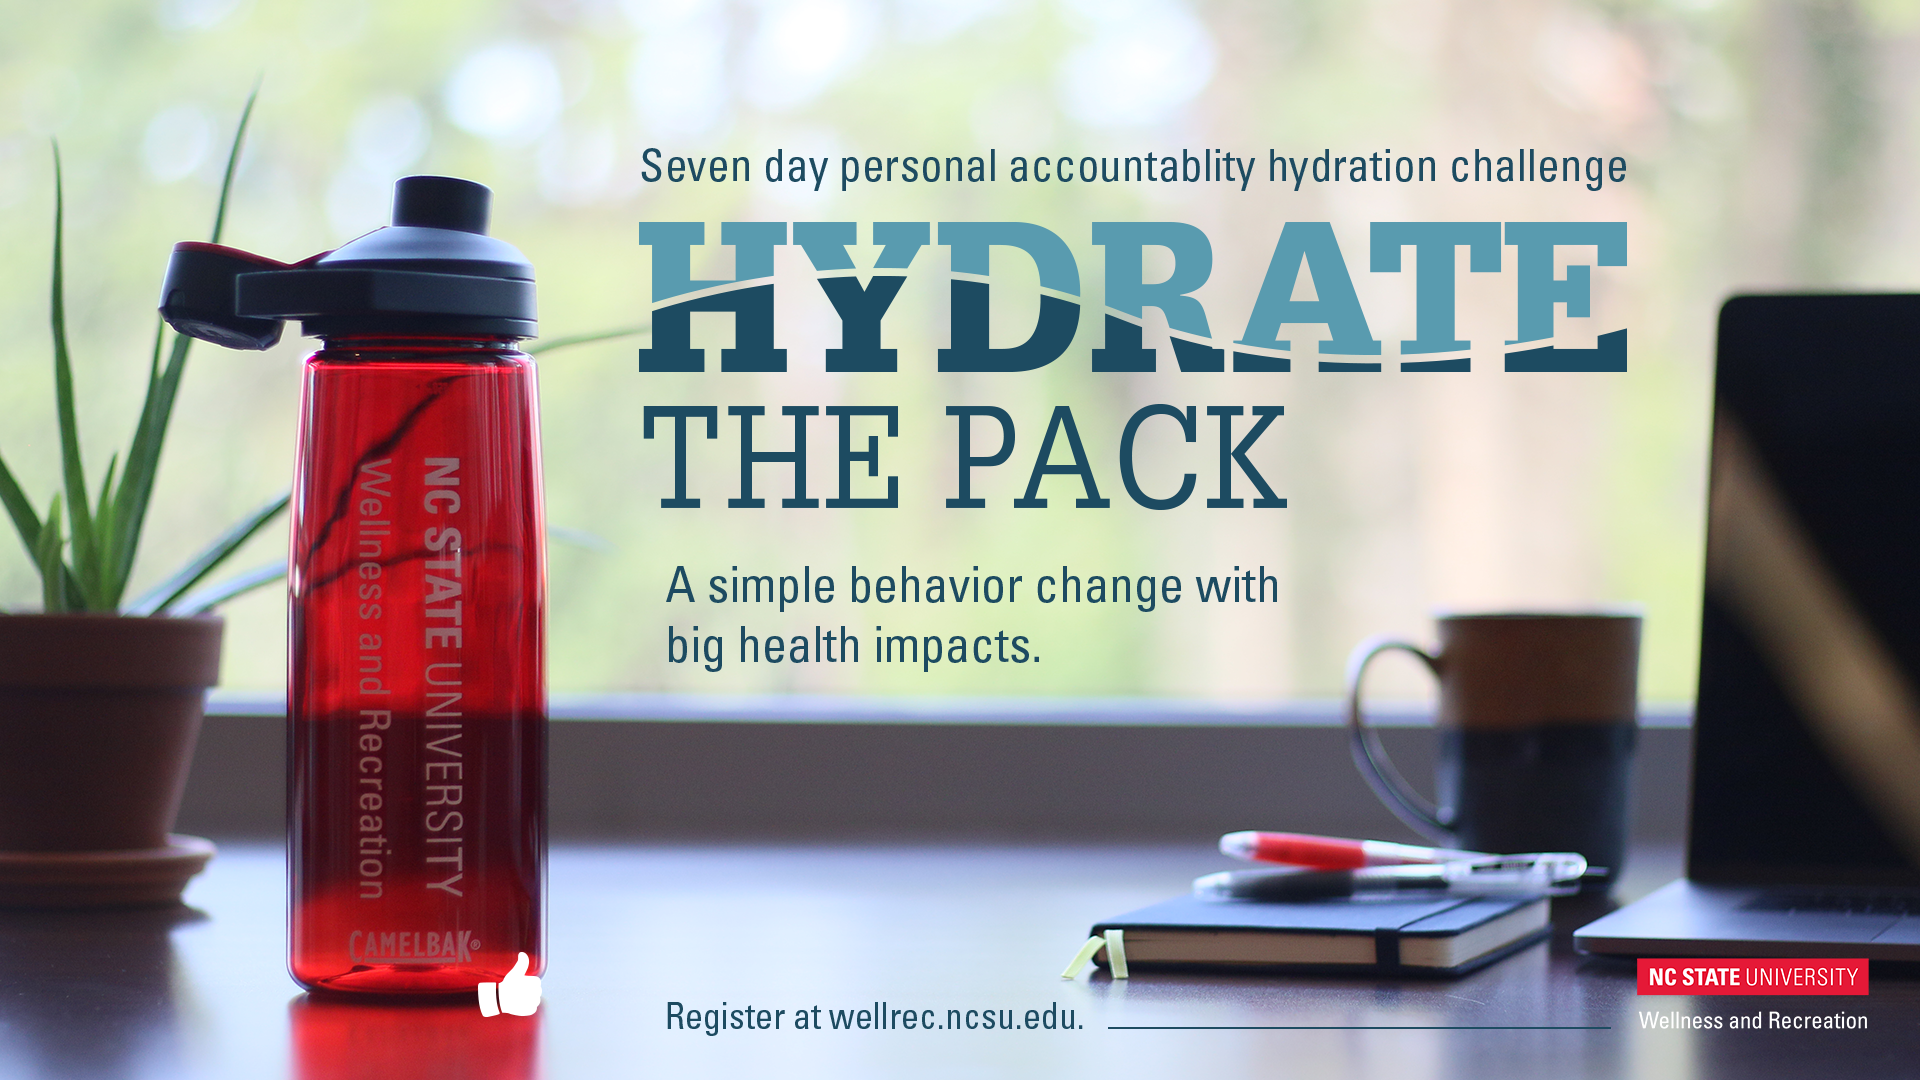 Hydrate the Pack Challenge